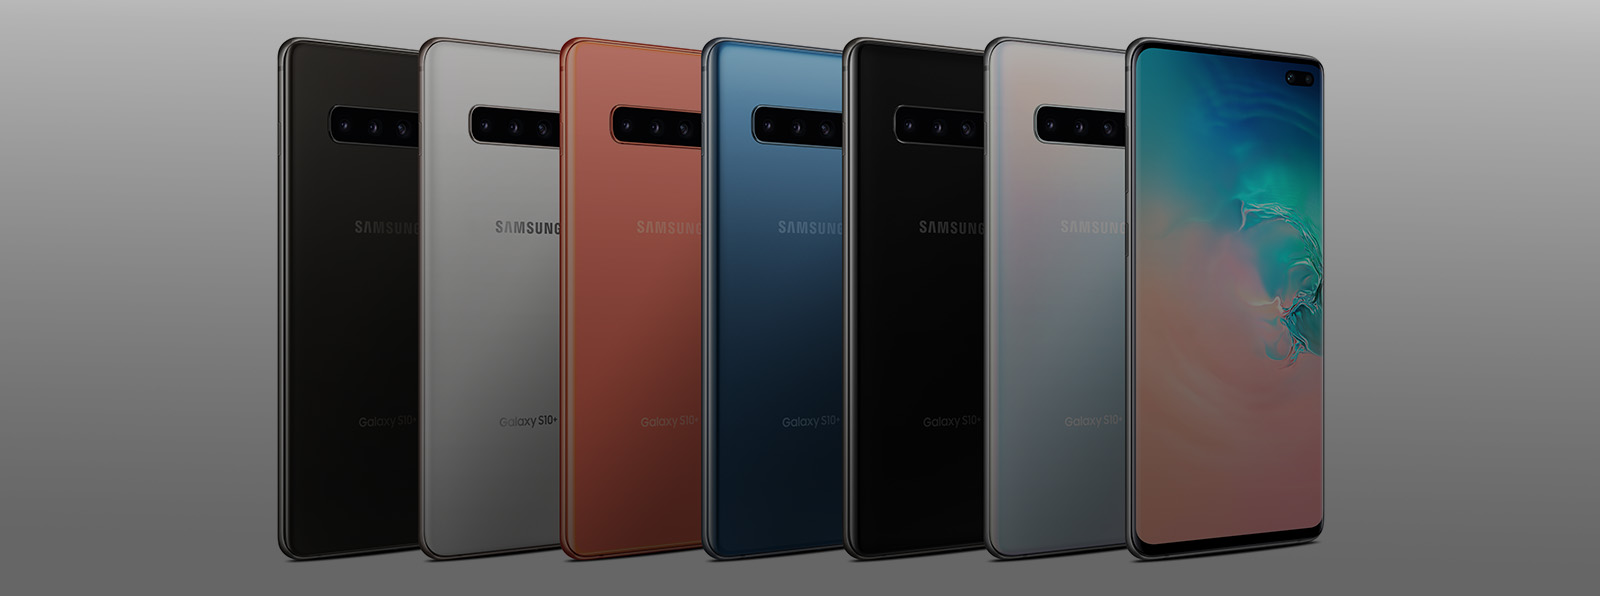 Latest Samsung Devices